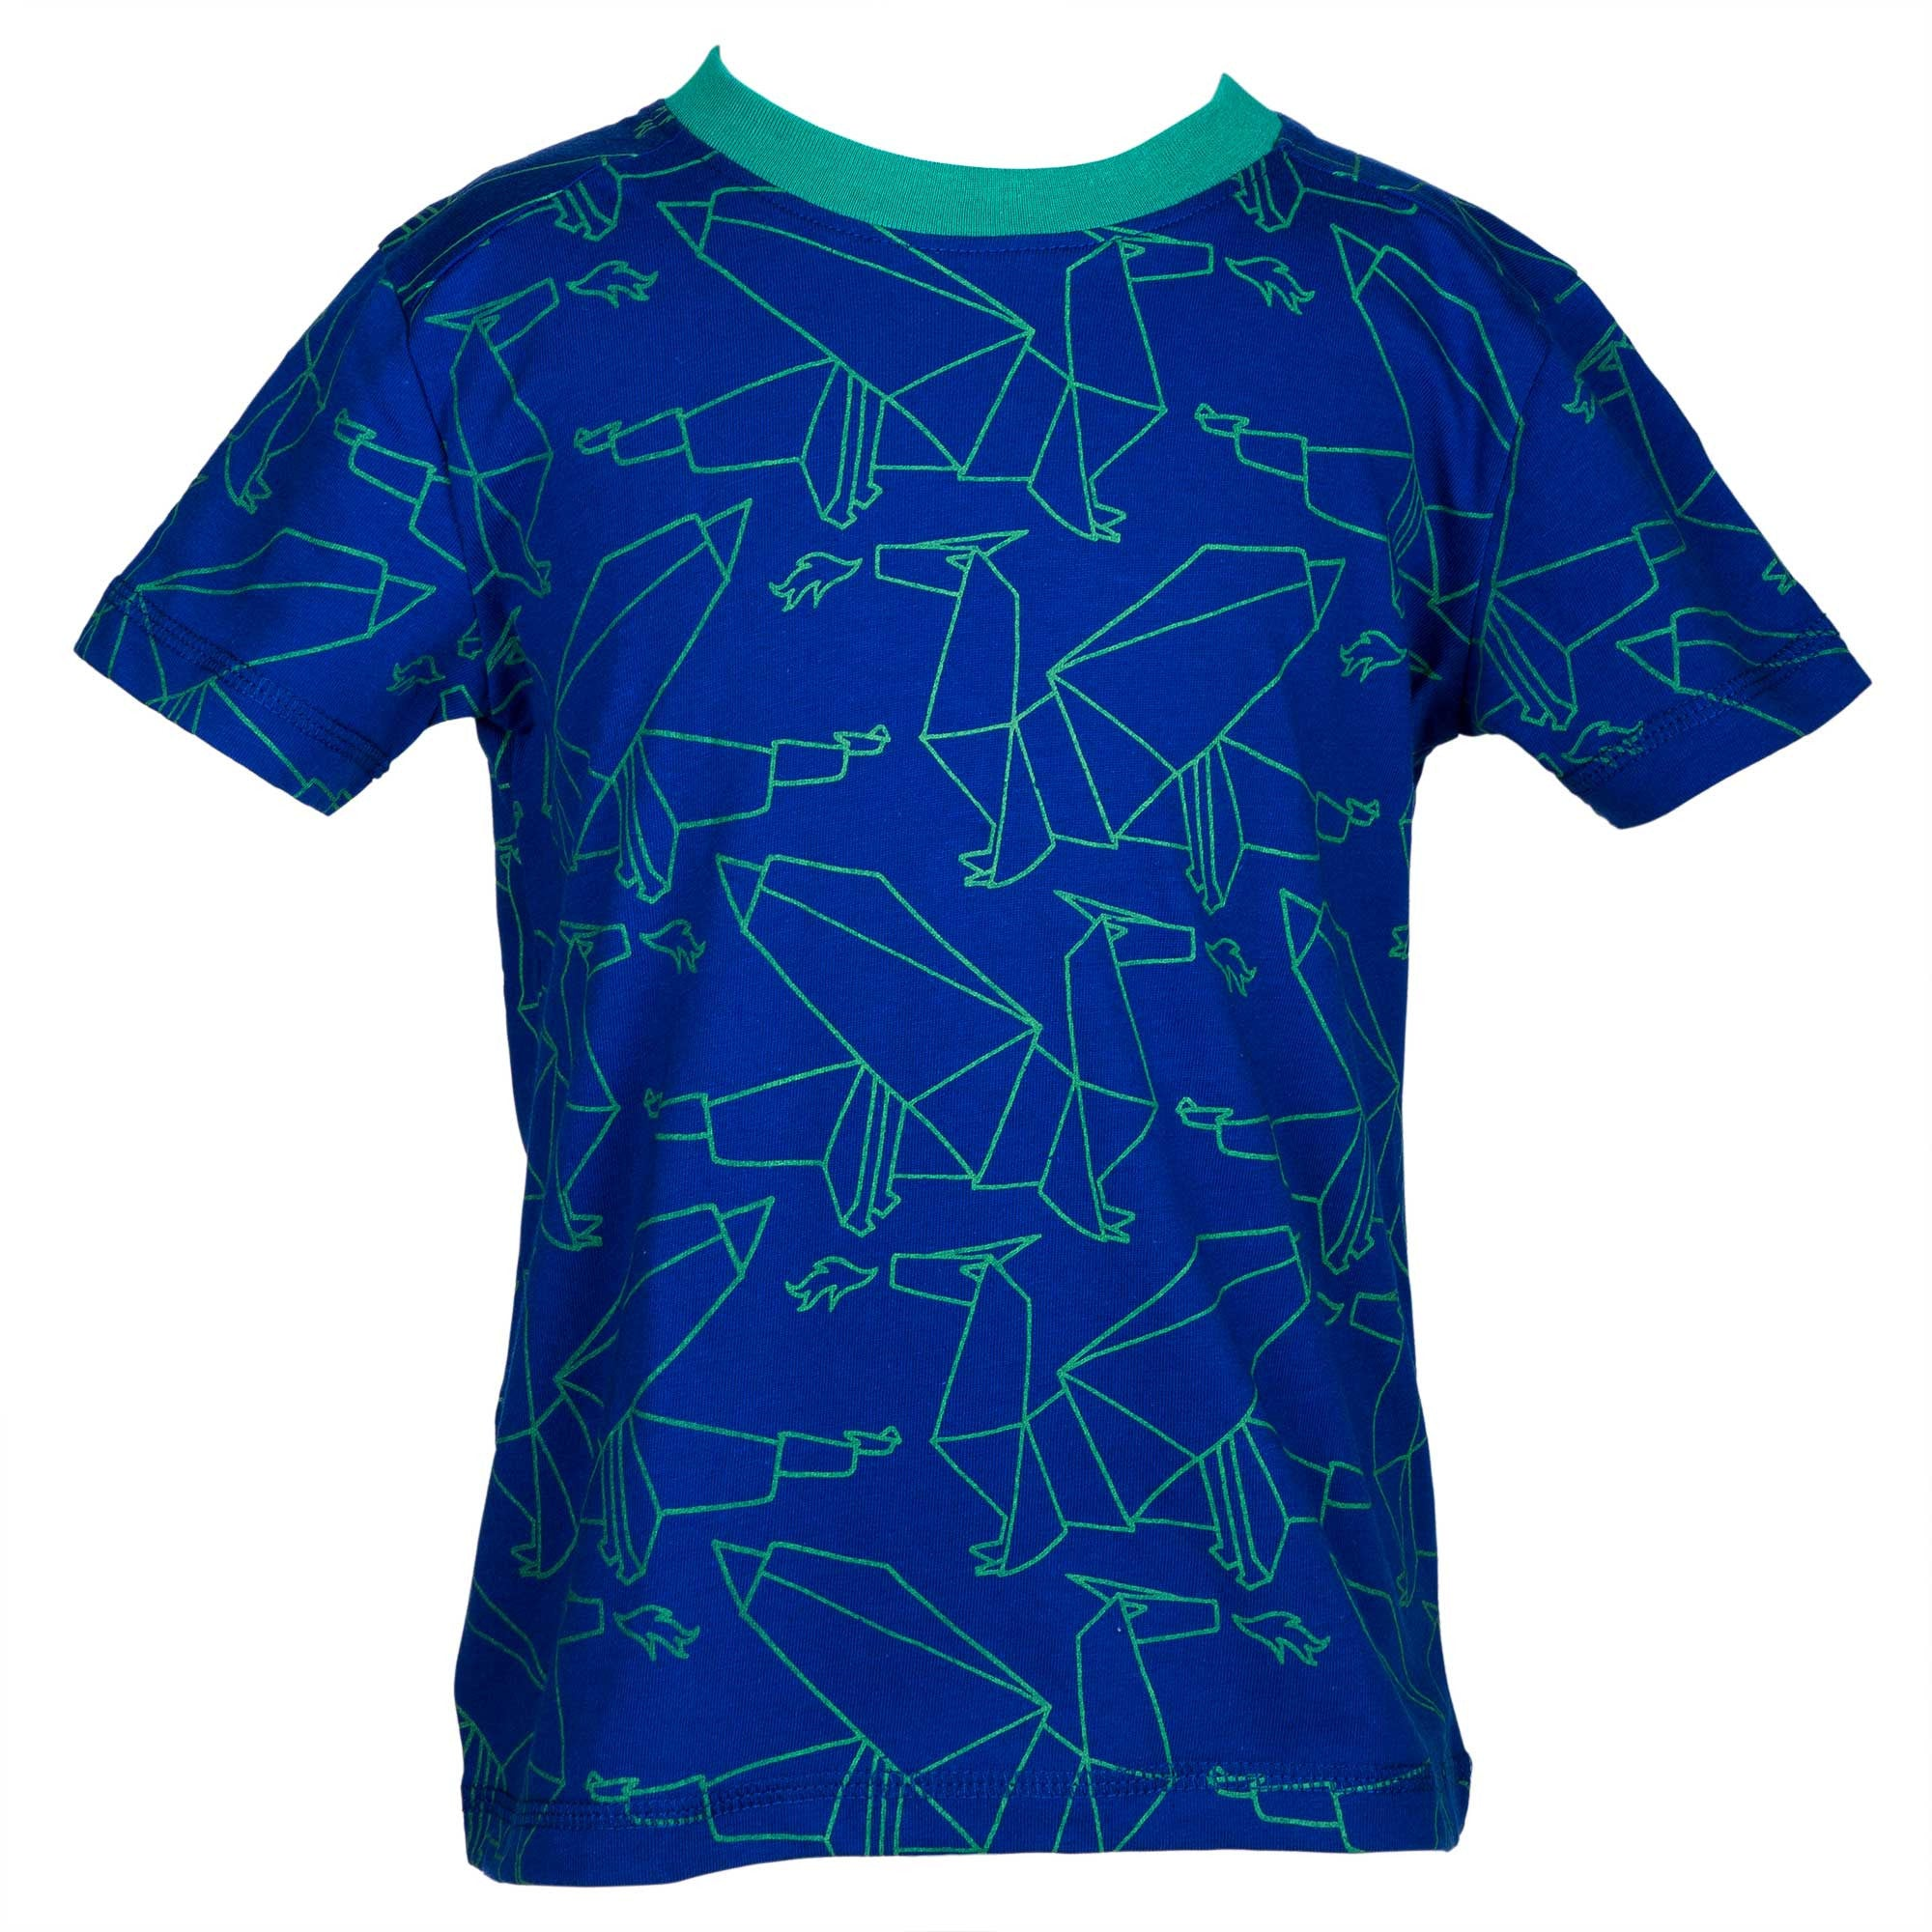 Green origami dragons t-shirt